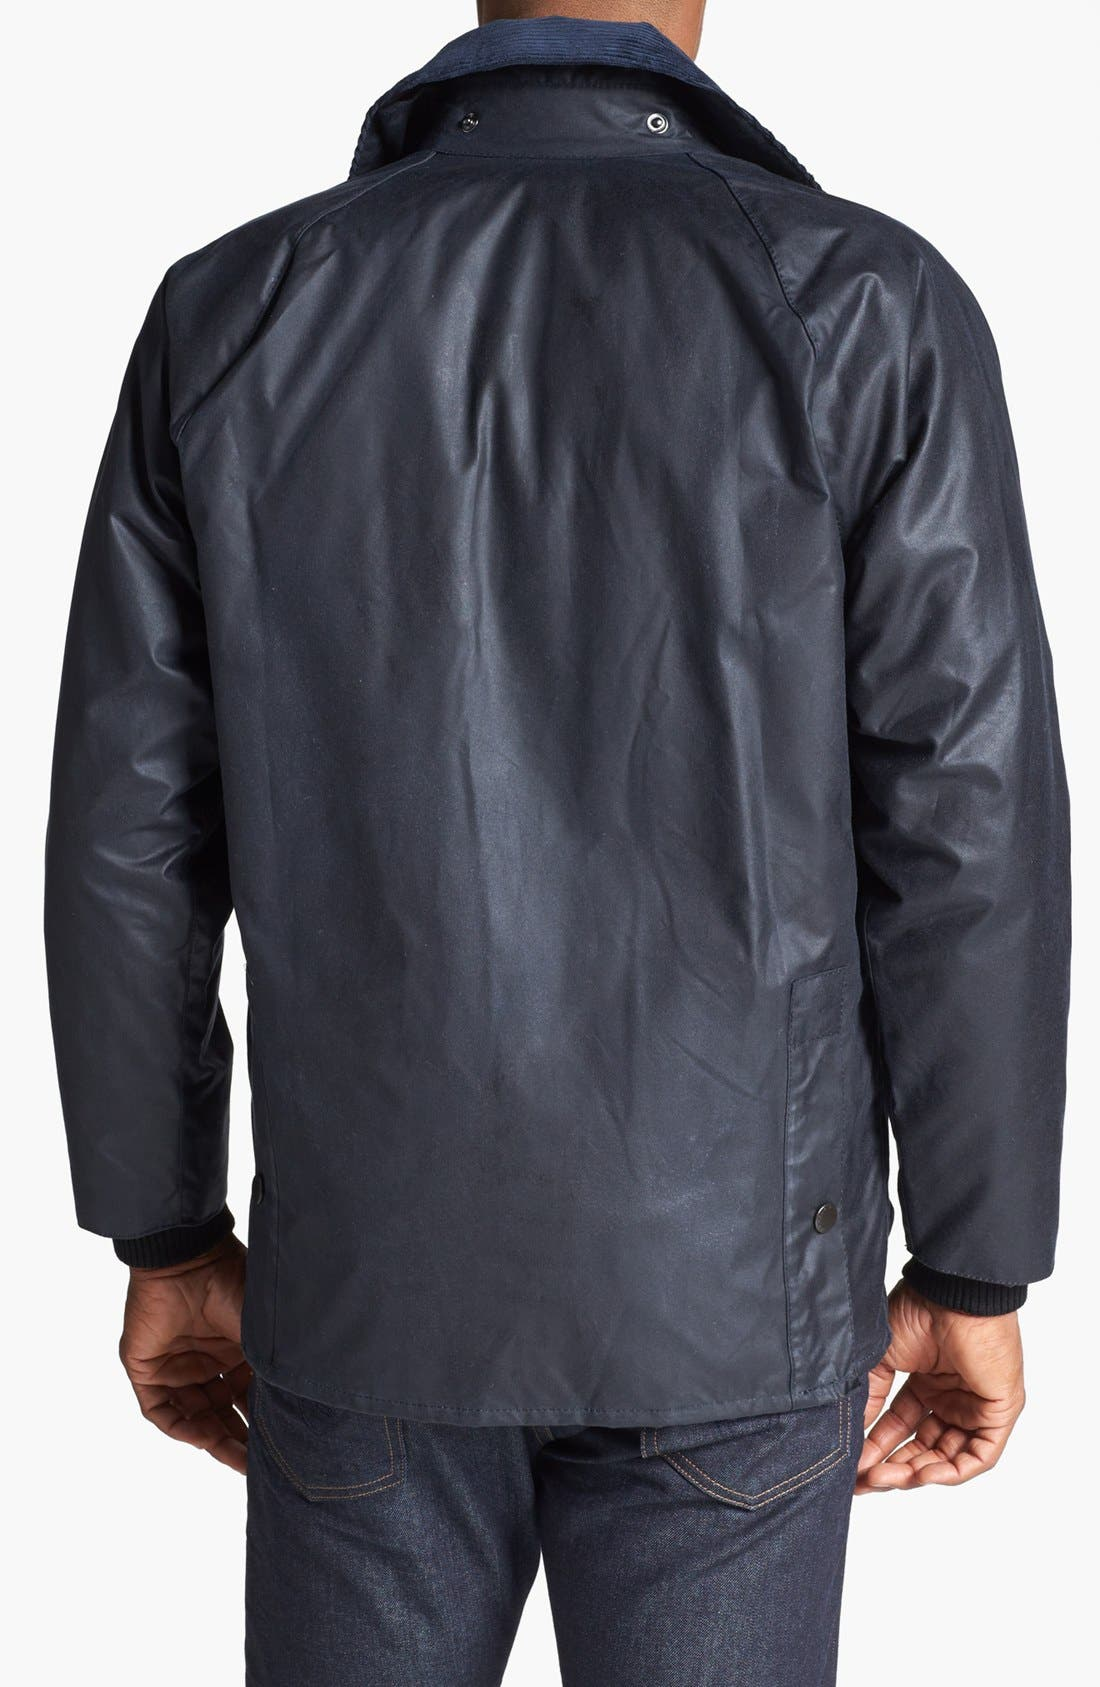 BARBOUR, 'Bedale' Regular Fit Waxed Cotton Jacket, Alternate thumbnail 2, color, NAVY